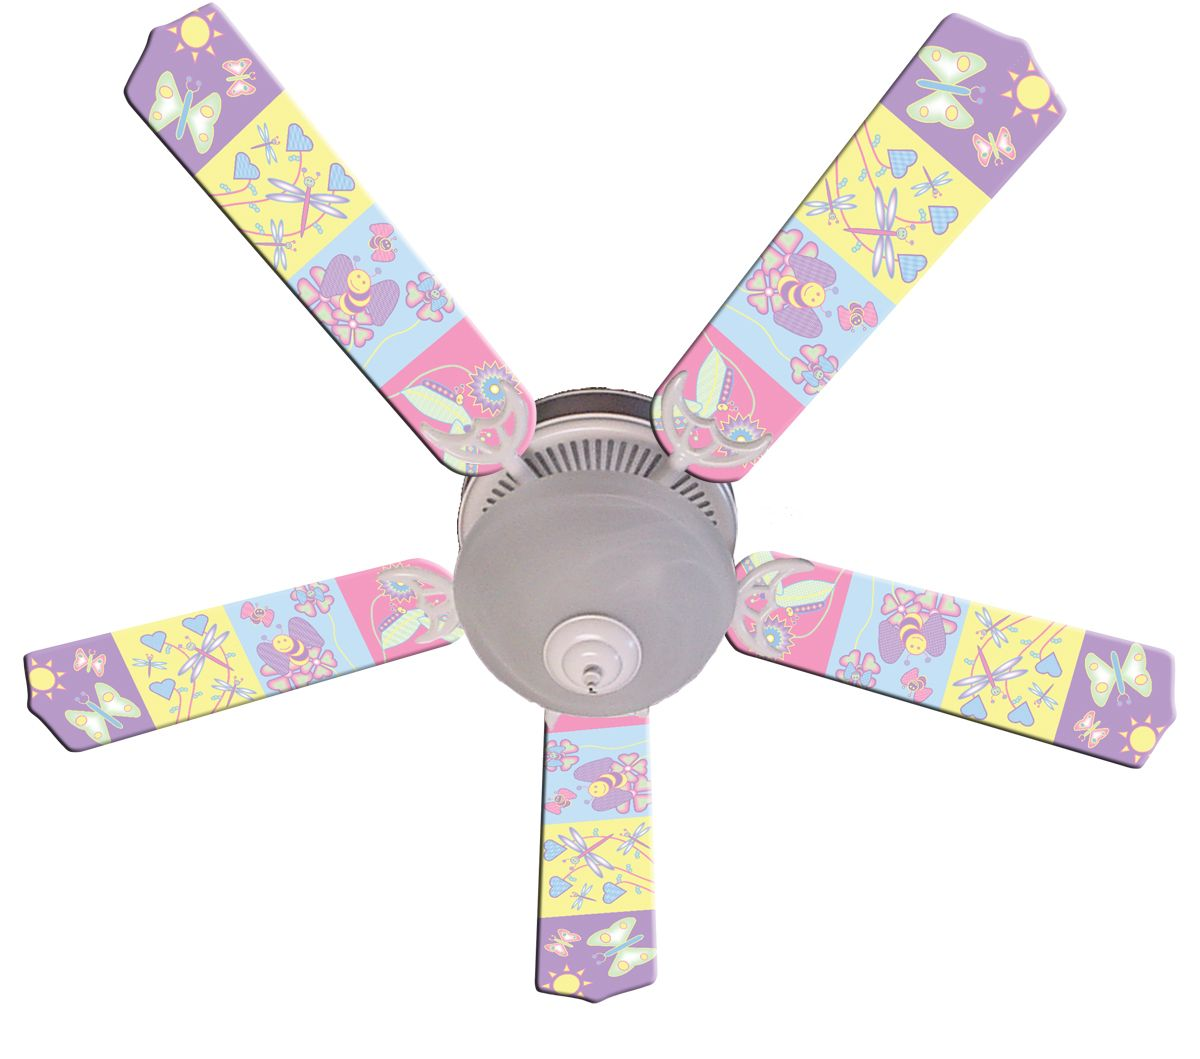 Baby nursery happy wings ceiling fan 52 ceiling fans ceiling and baby nursery happy wings ceiling fan 52 aloadofball Image collections